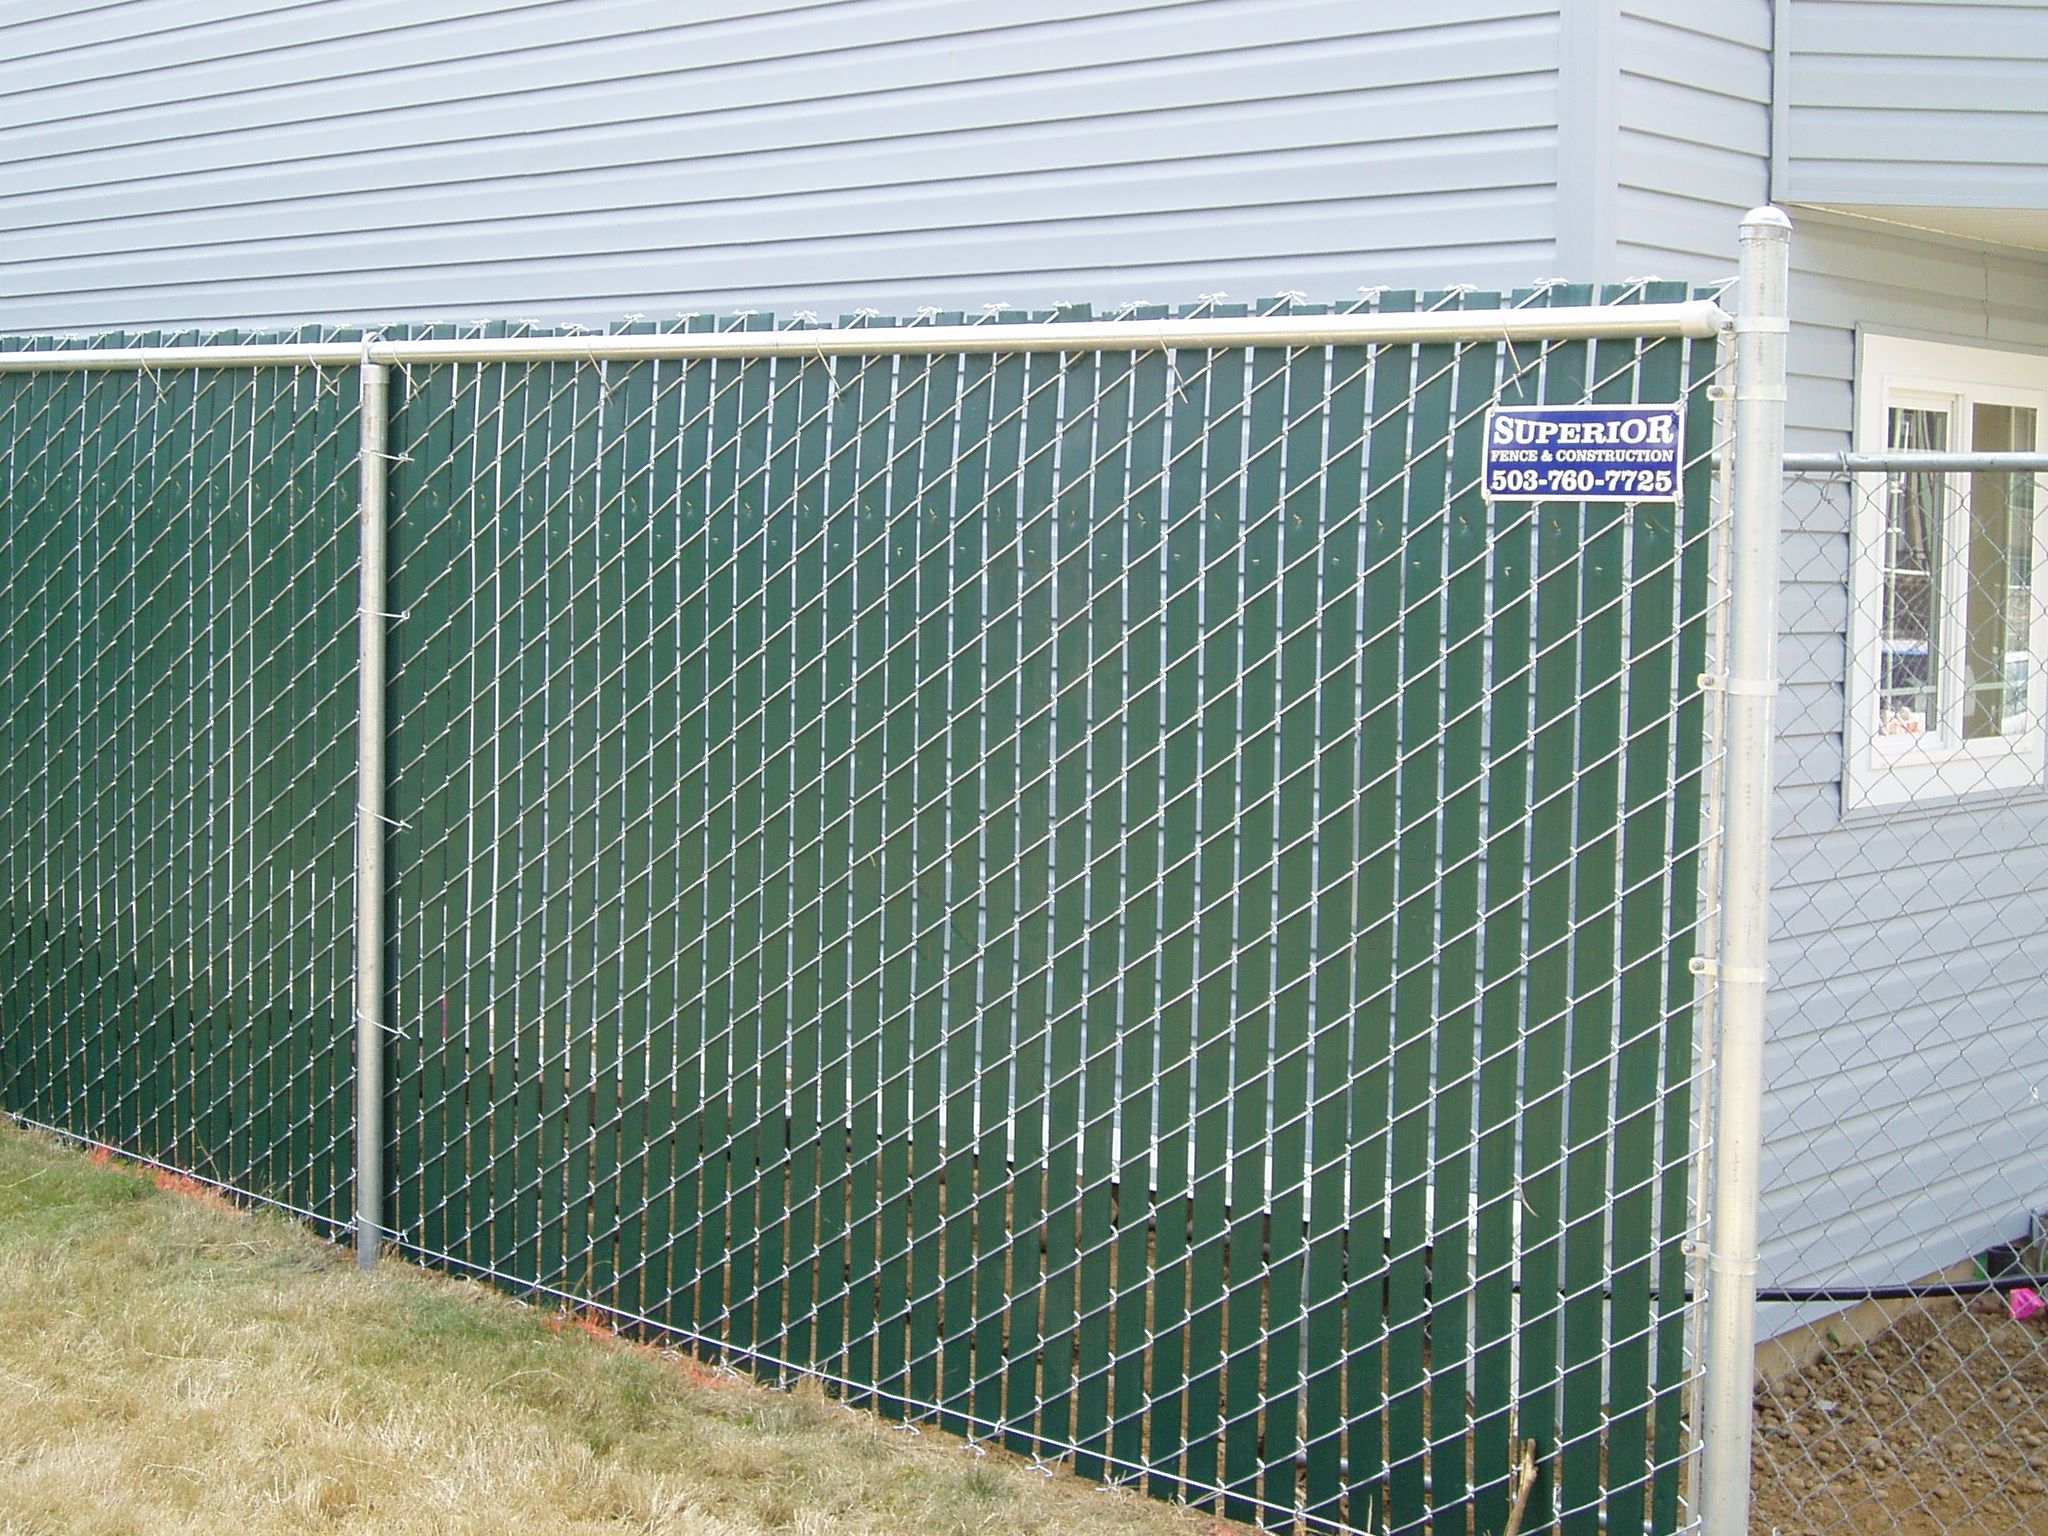 Green Slatted Chain Link Fence Slats Add Privacy To Your